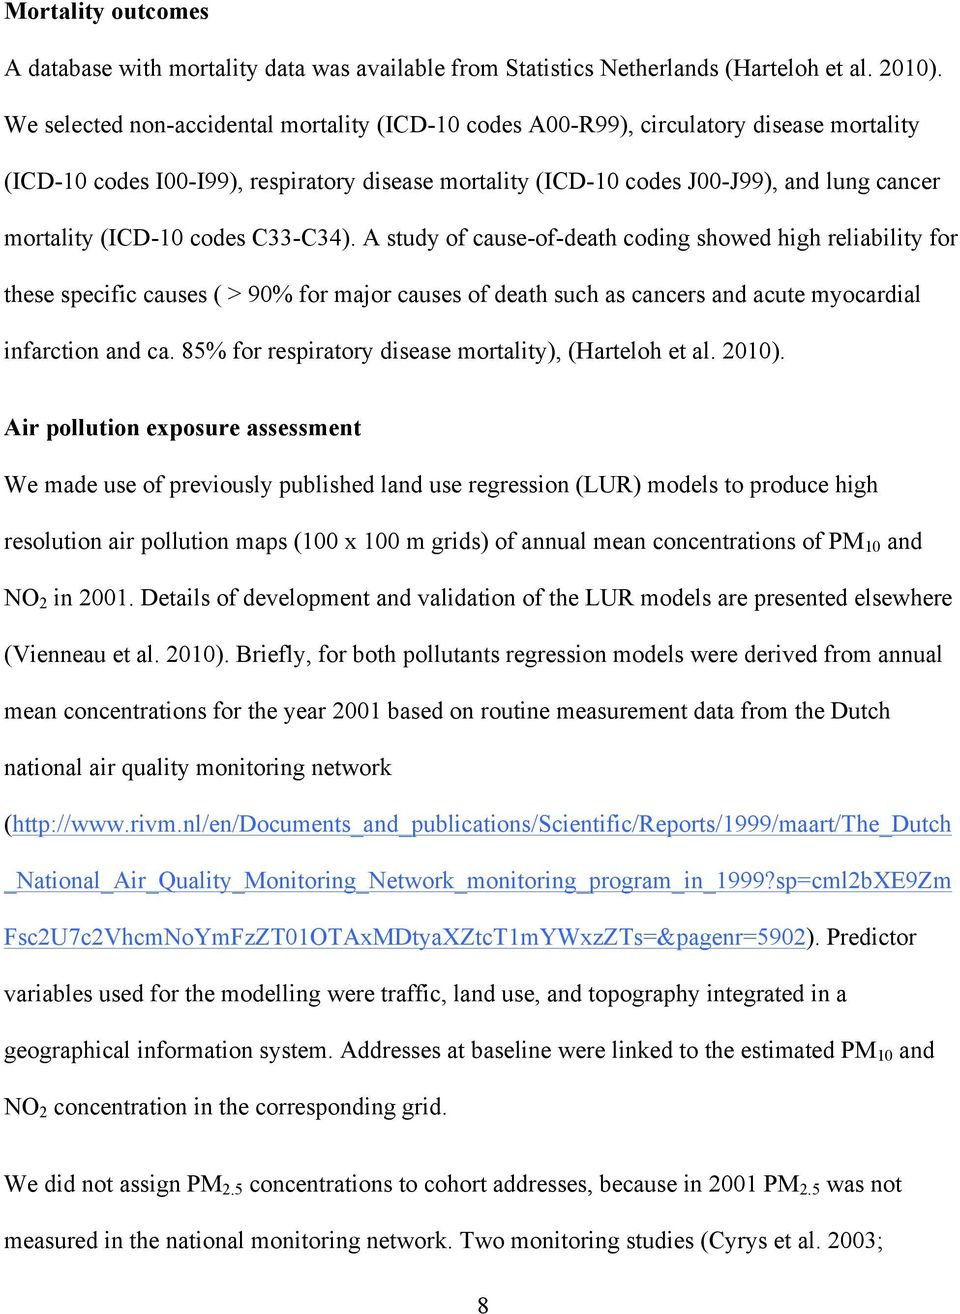 (ICD-10 codes C33-C34). A study of cause-of-death coding showed high reliability for these specific causes ( > 90% for major causes of death such as cancers and acute myocardial infarction and ca.